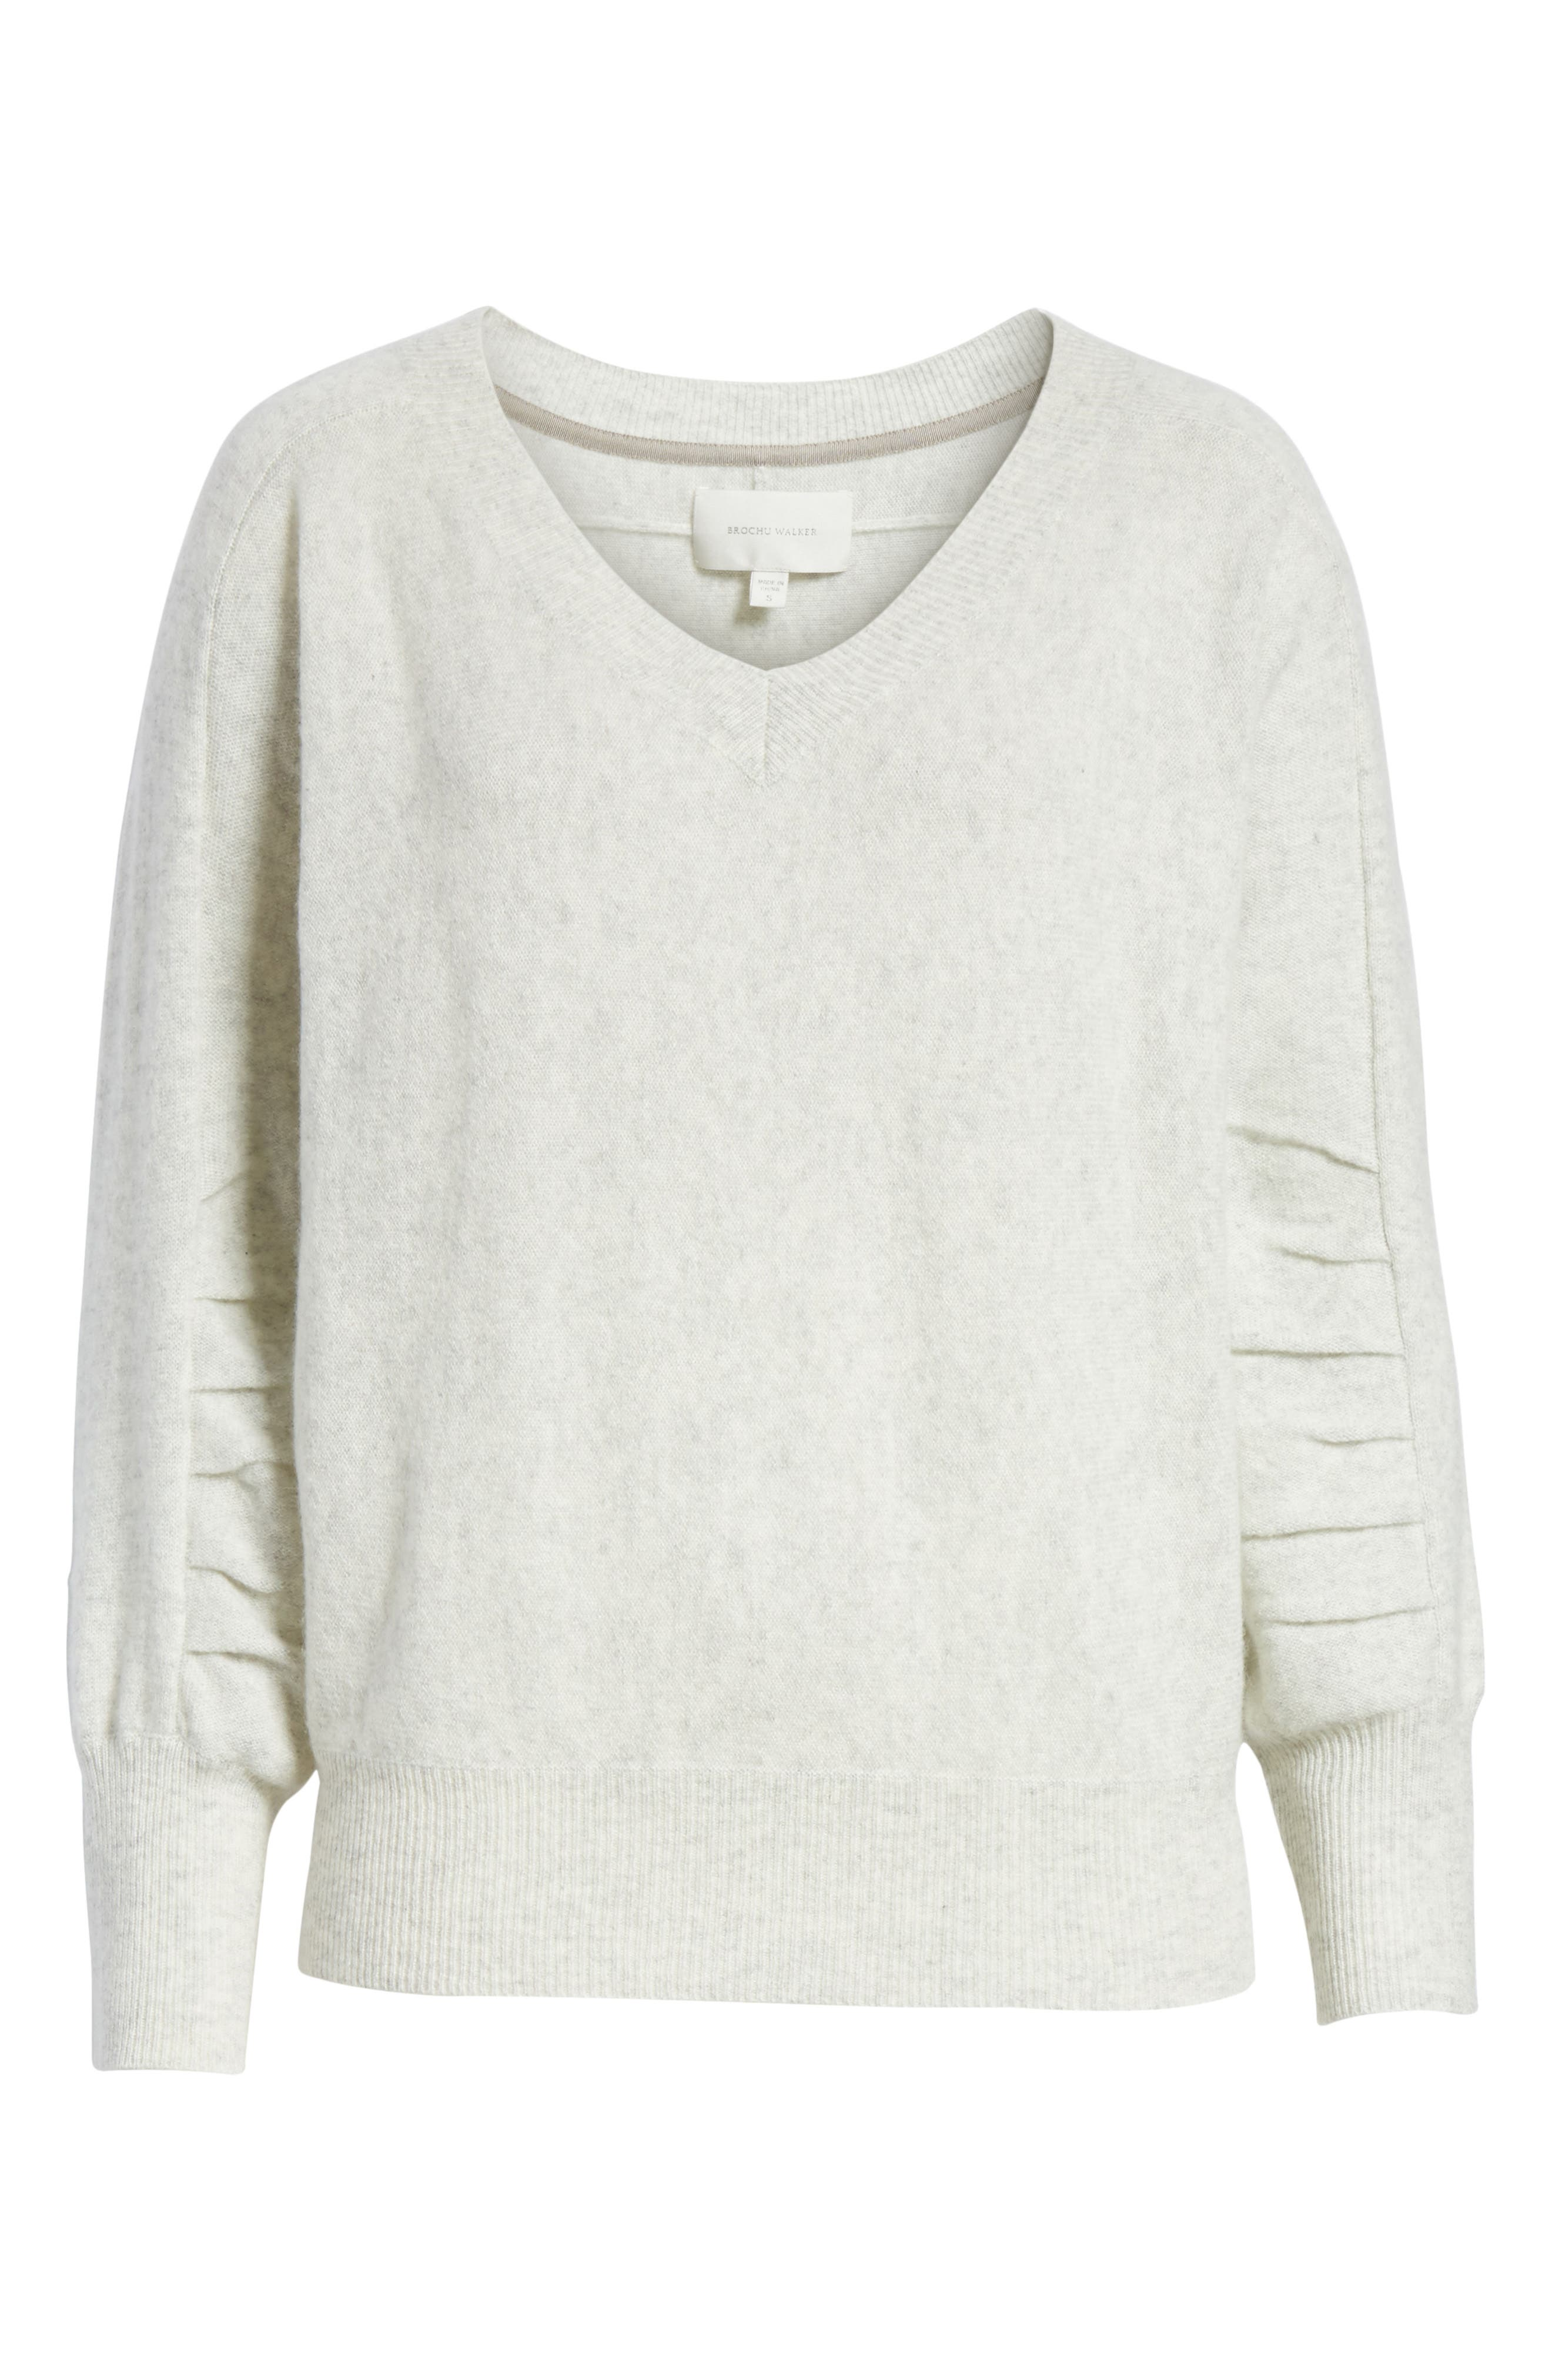 Weller Cashmere Sweater,                             Alternate thumbnail 11, color,